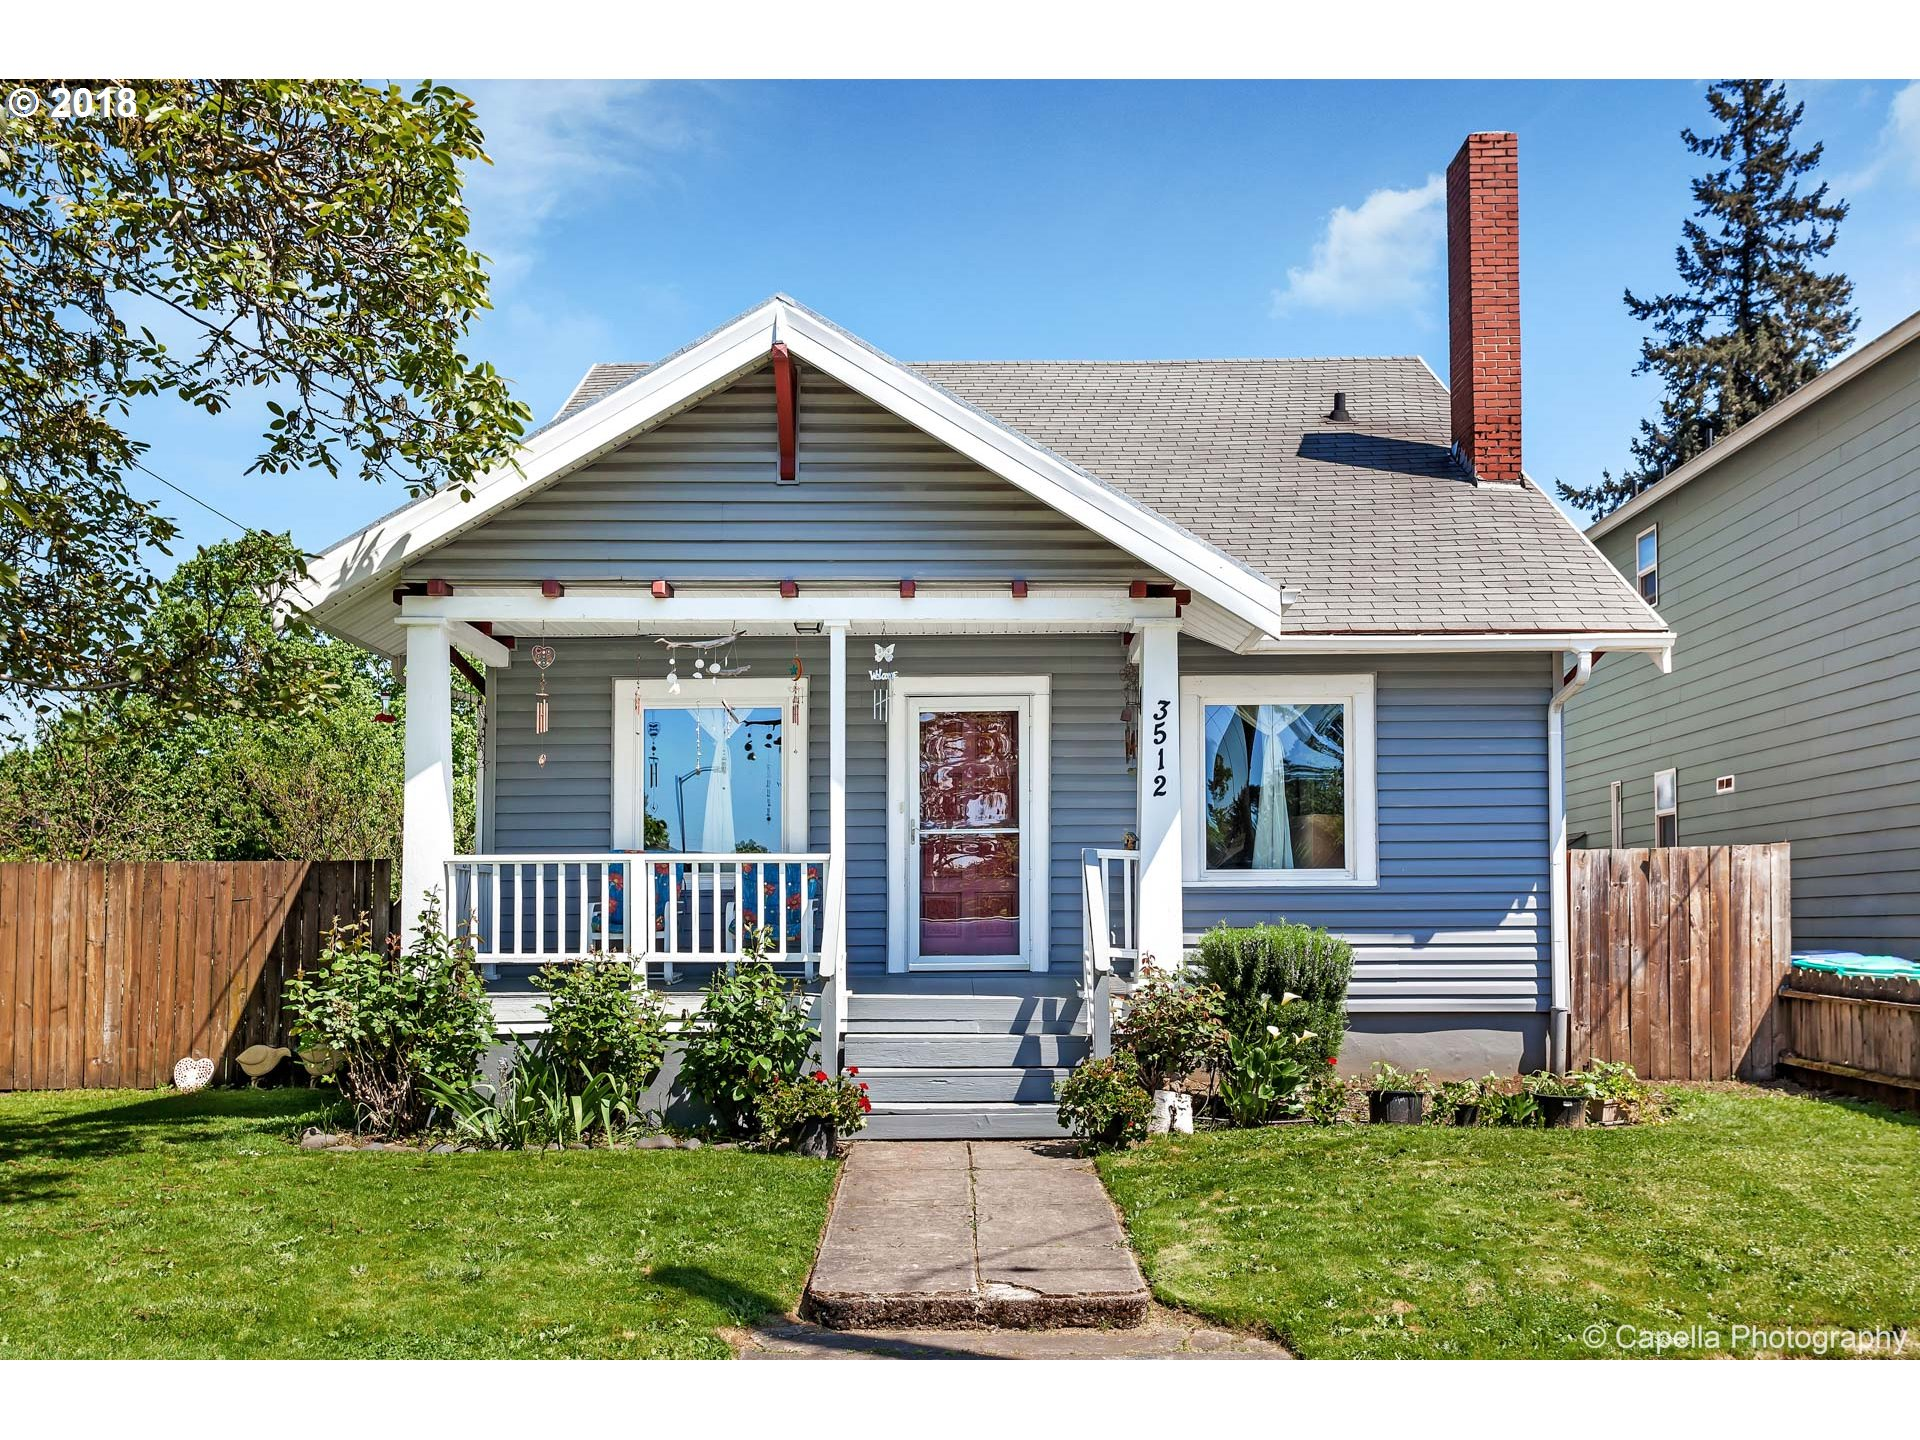 2704 sq. ft 3 bedrooms 2 bathrooms  House For Sale,Portland, OR